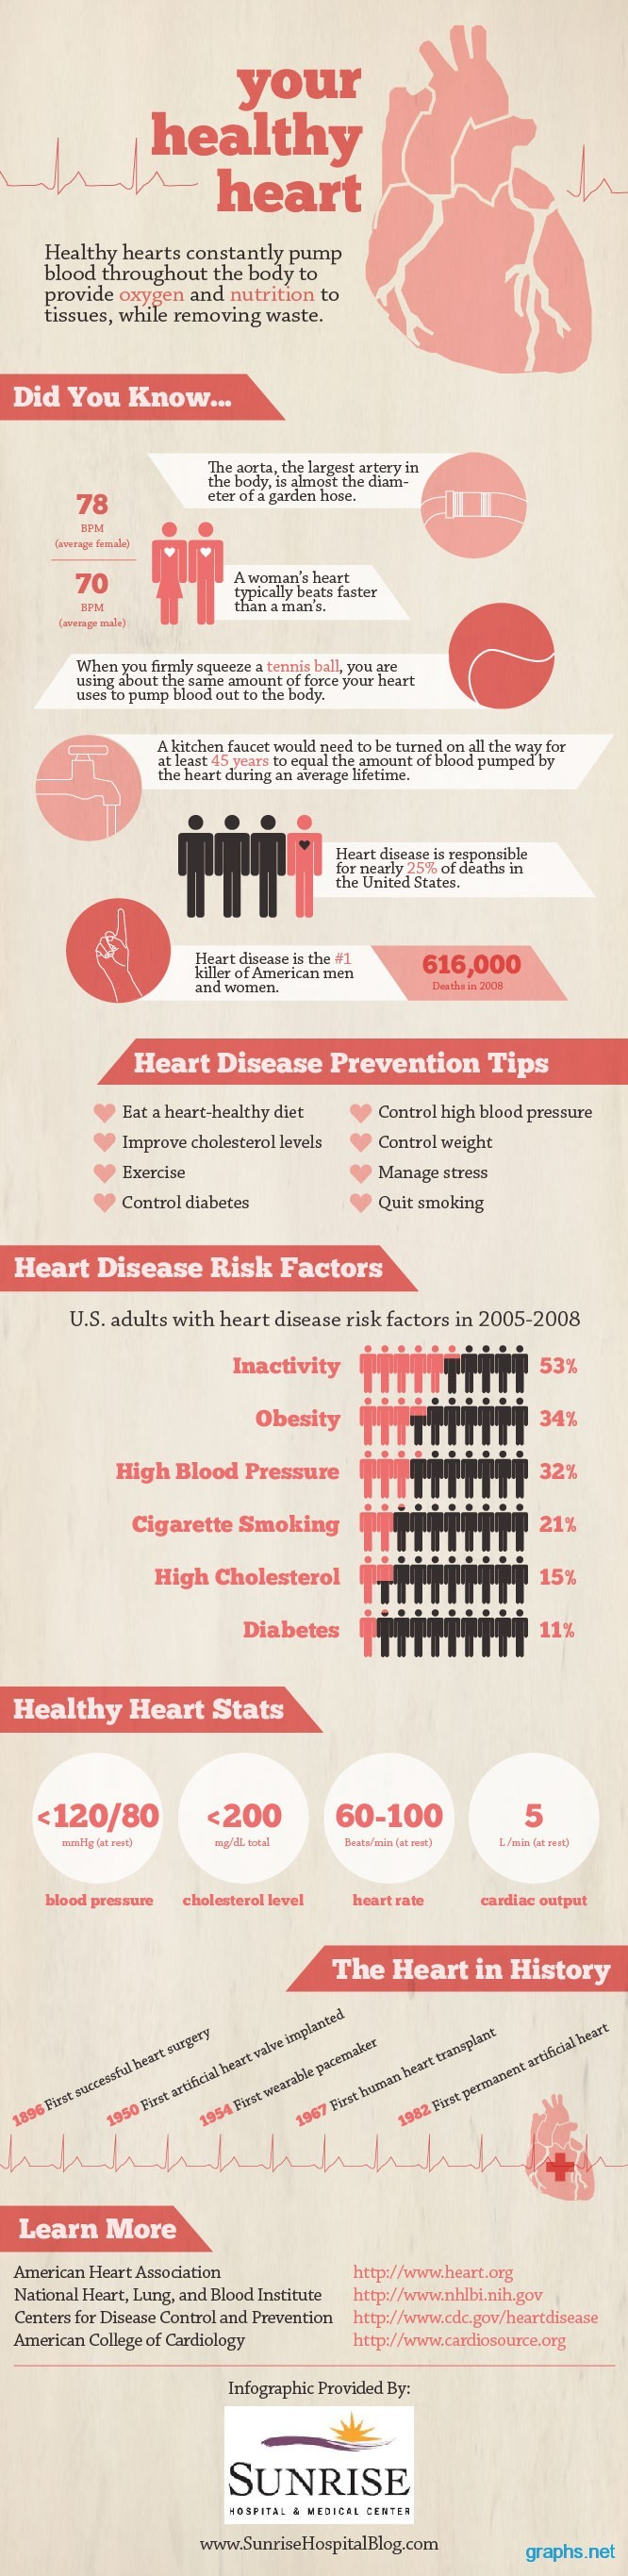 heart disease prevention facts